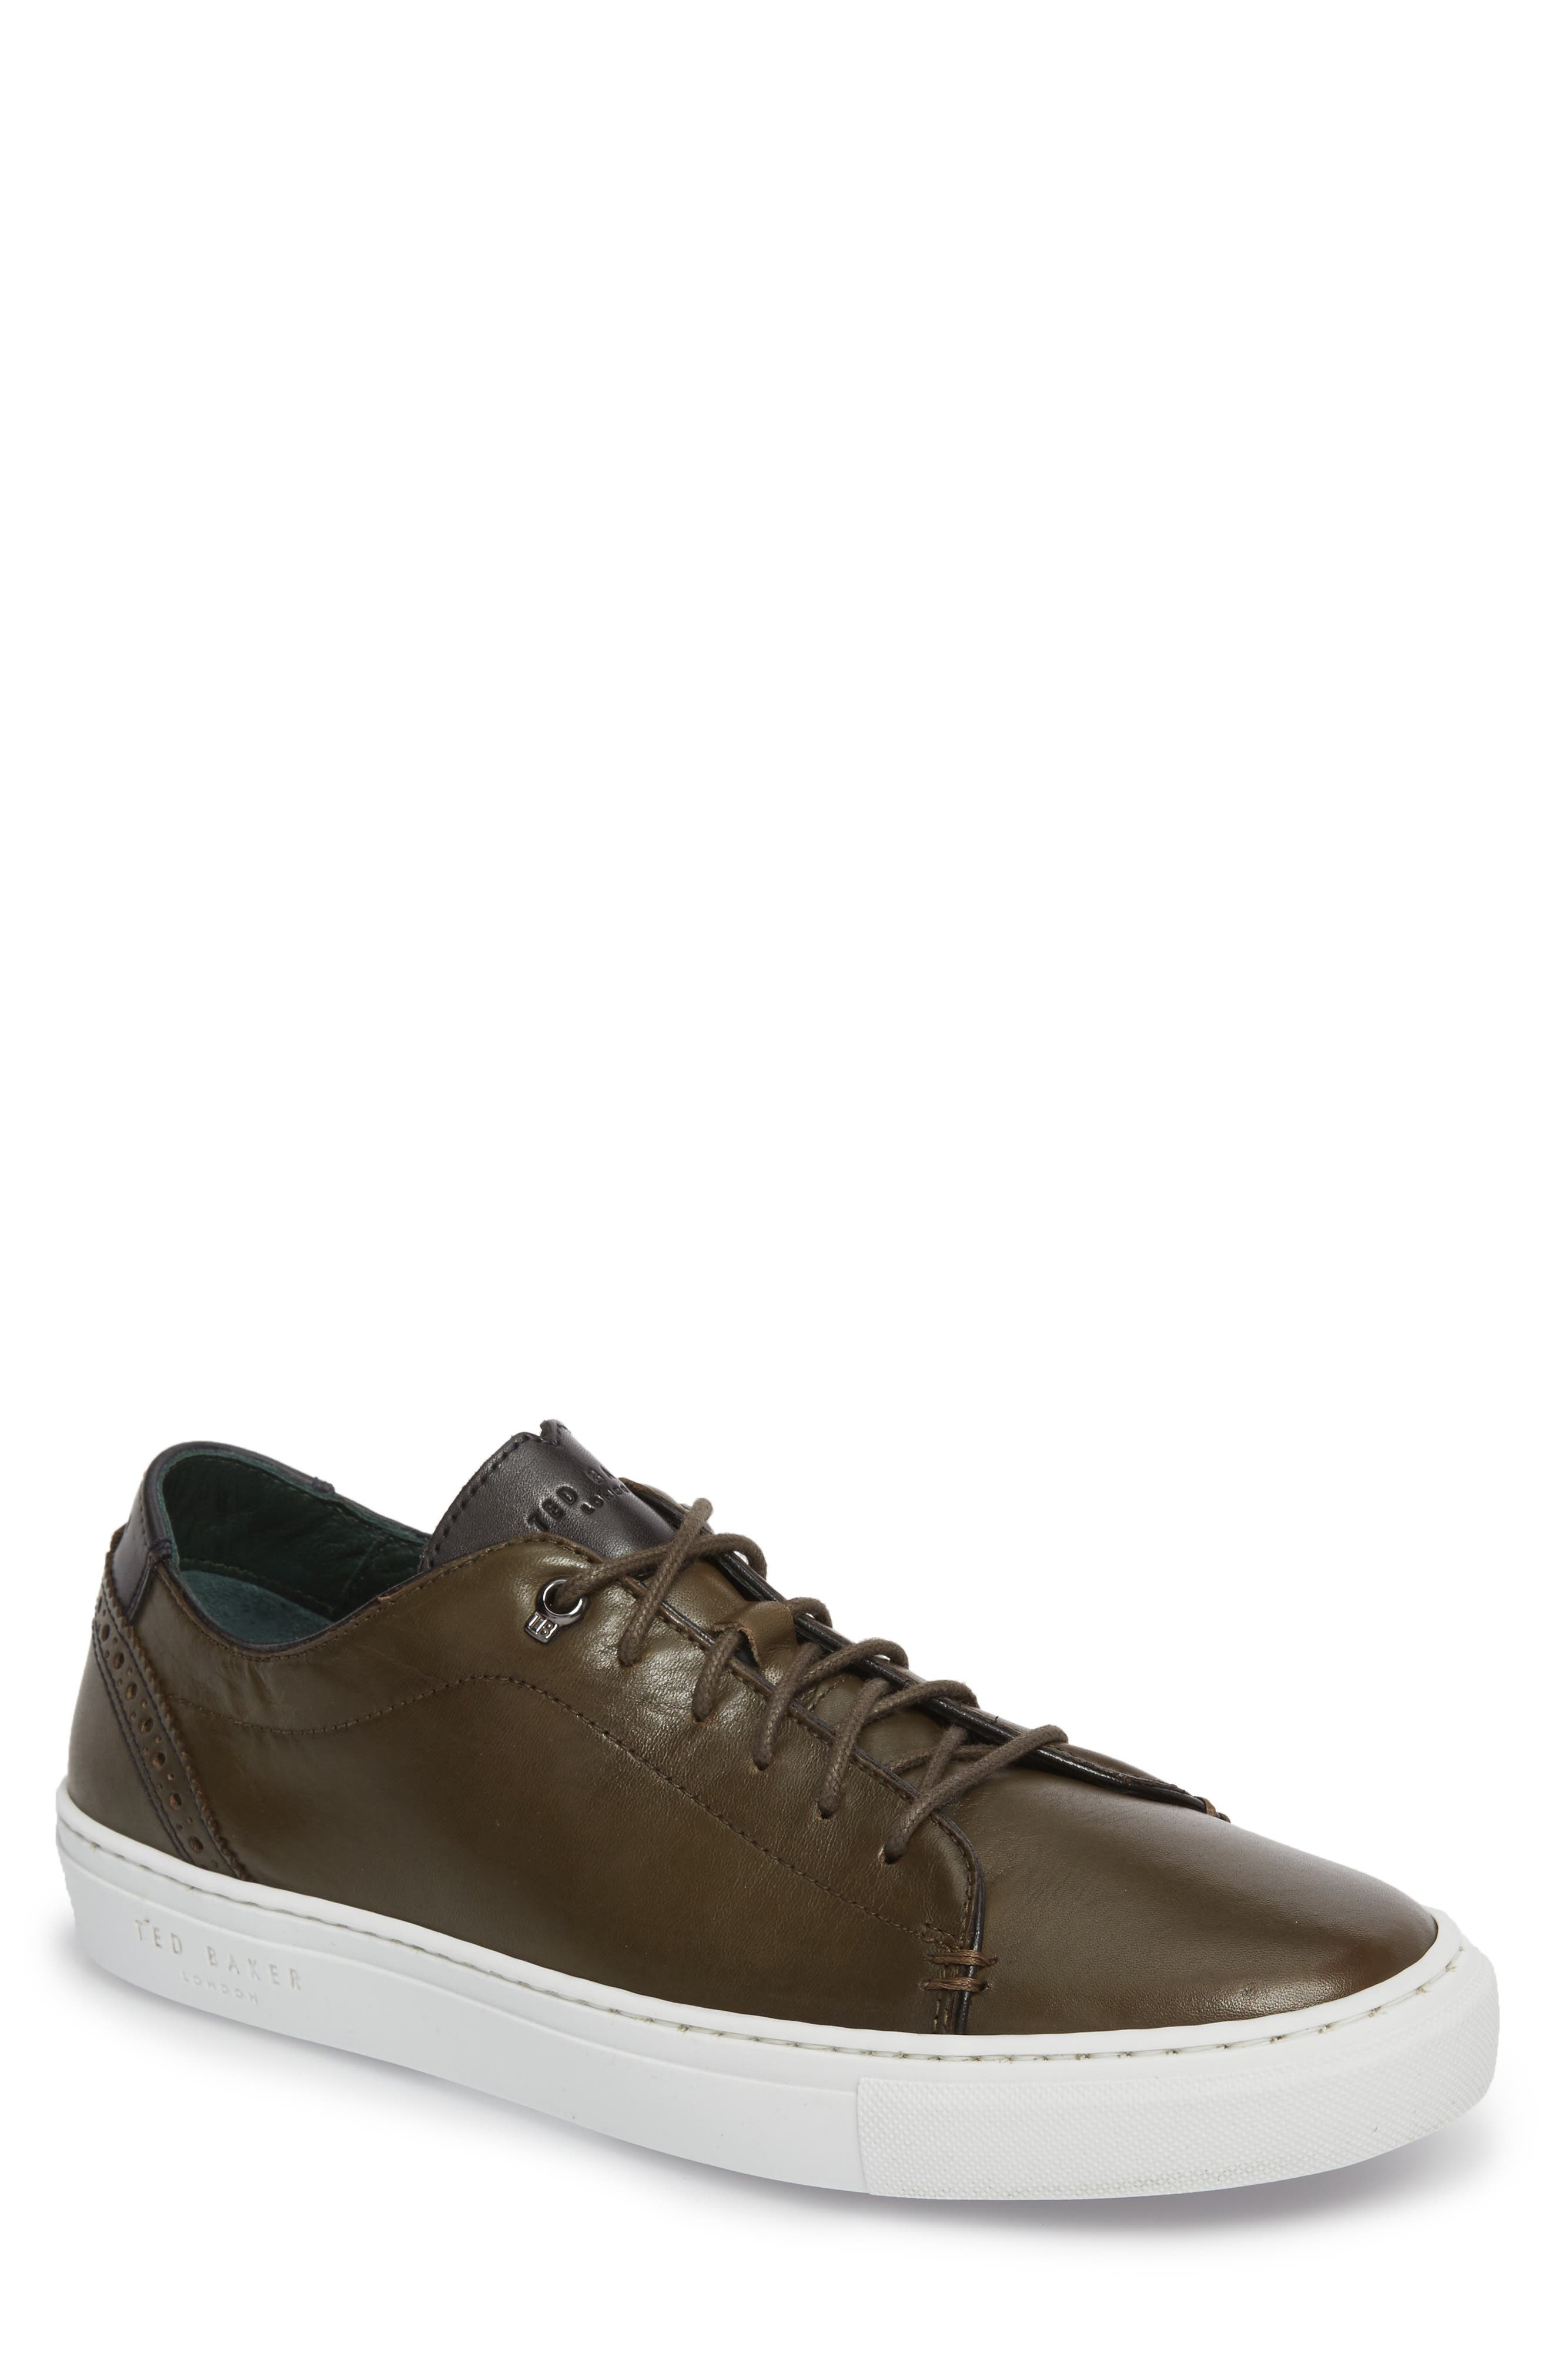 ted baker shoes sneakers trainers club logos with names